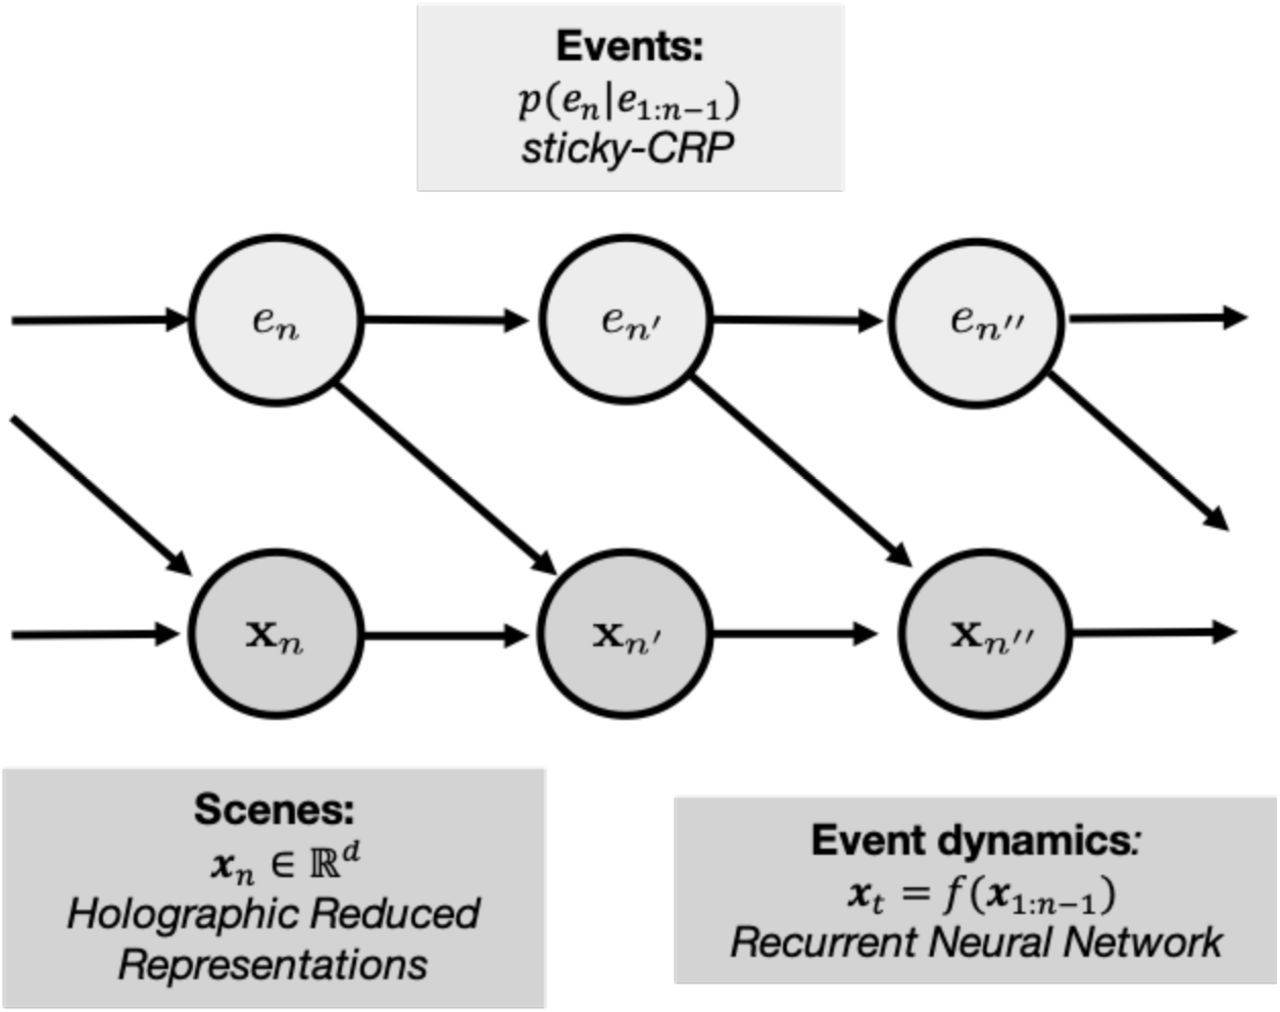 Structured event memory: a neuro-symbolic model of event